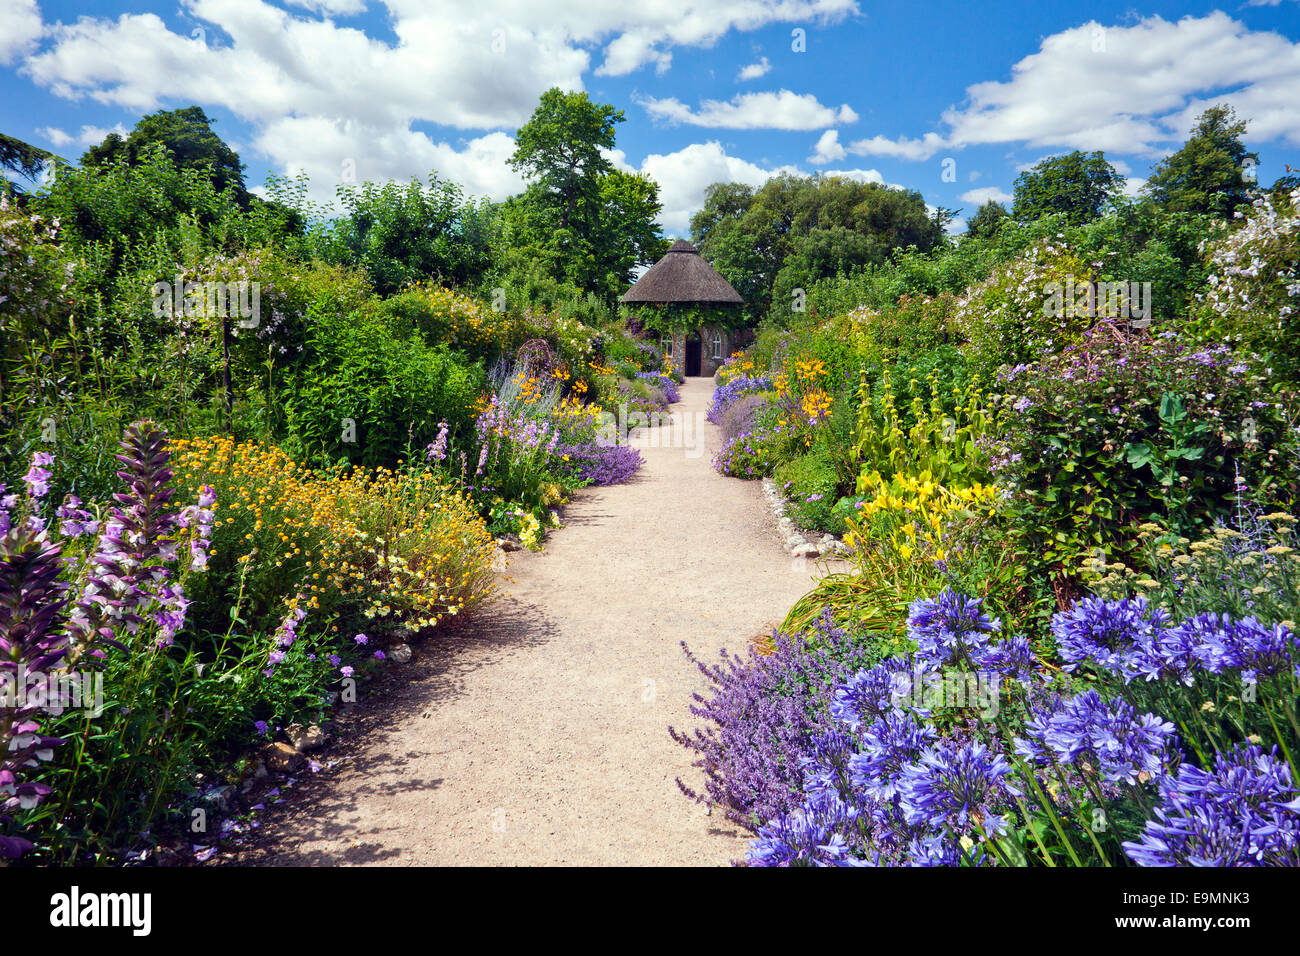 Sweet Walled Garden England Stock Photos  Walled Garden England Stock  With Interesting The Circular Thatched Apple Store In The Walled Garden At West Dean Gardens  West Sussex With Attractive Wooden Garden Huts Also Royal Botanic Gardens Kew Richmond Surrey Tw Ab In Addition Botanic Gardens Edinburgh And Secret Garden Youtube As Well As Garden Leaf Rake Additionally Citronella Garden Candles From Alamycom With   Interesting Walled Garden England Stock Photos  Walled Garden England Stock  With Attractive The Circular Thatched Apple Store In The Walled Garden At West Dean Gardens  West Sussex And Sweet Wooden Garden Huts Also Royal Botanic Gardens Kew Richmond Surrey Tw Ab In Addition Botanic Gardens Edinburgh From Alamycom